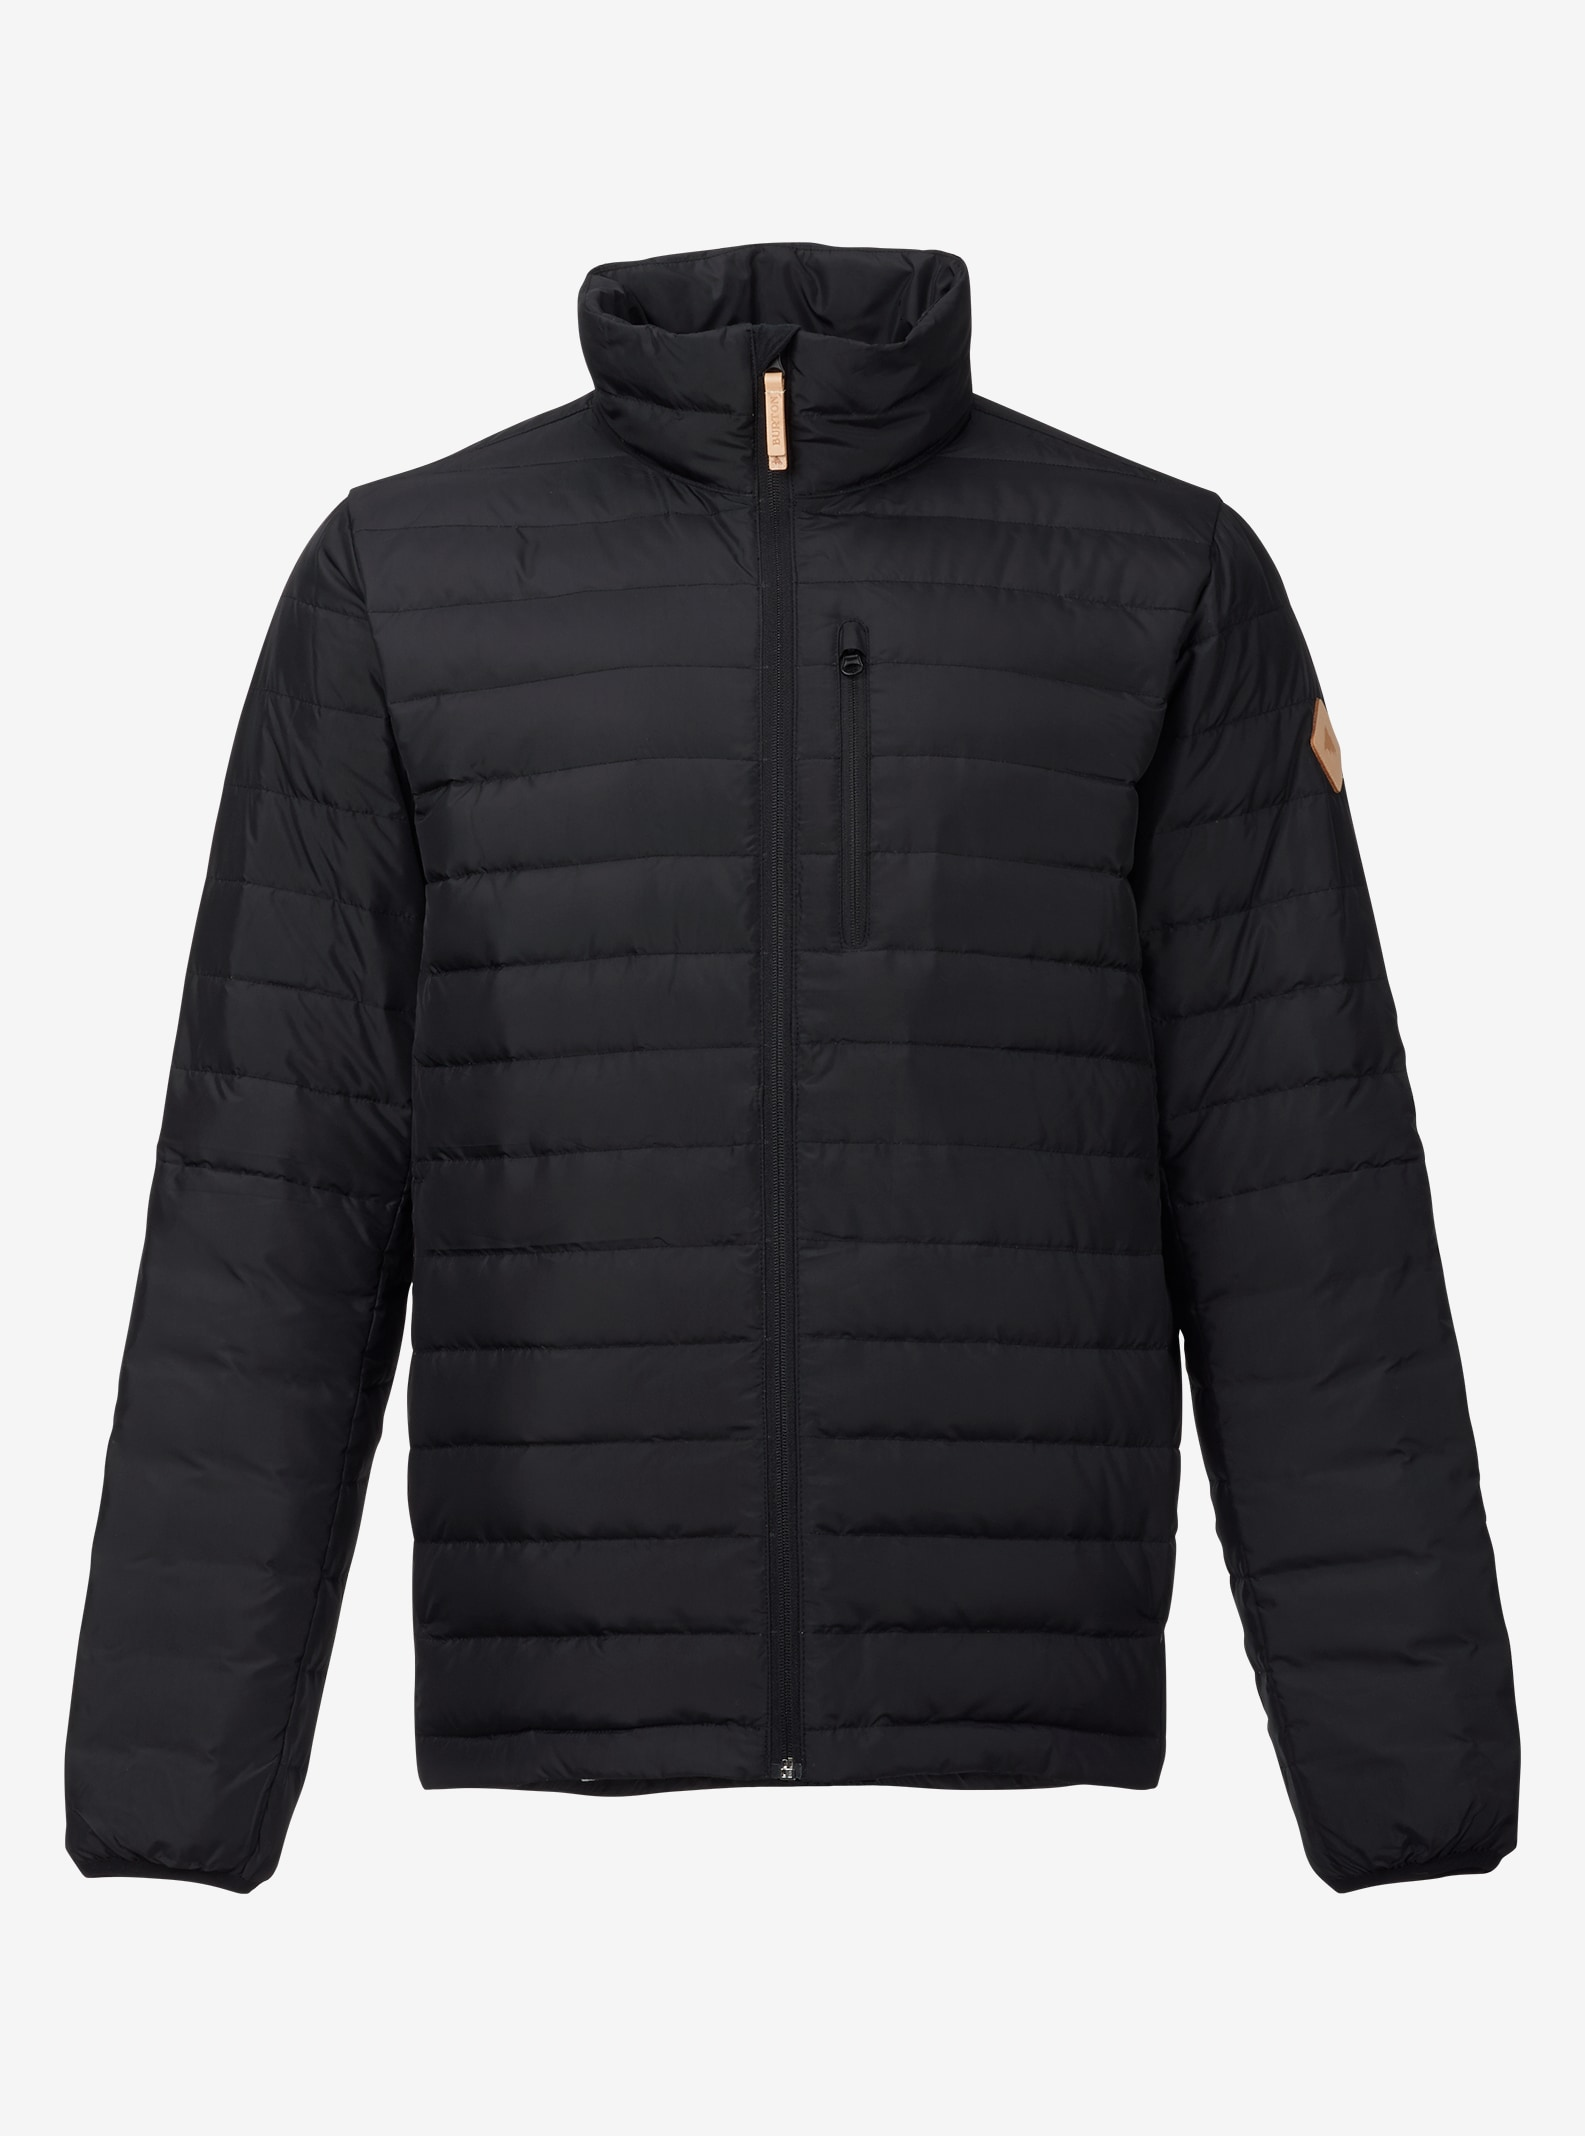 Burton Evergreen Lightweight Insulator Jacket shown in True Black